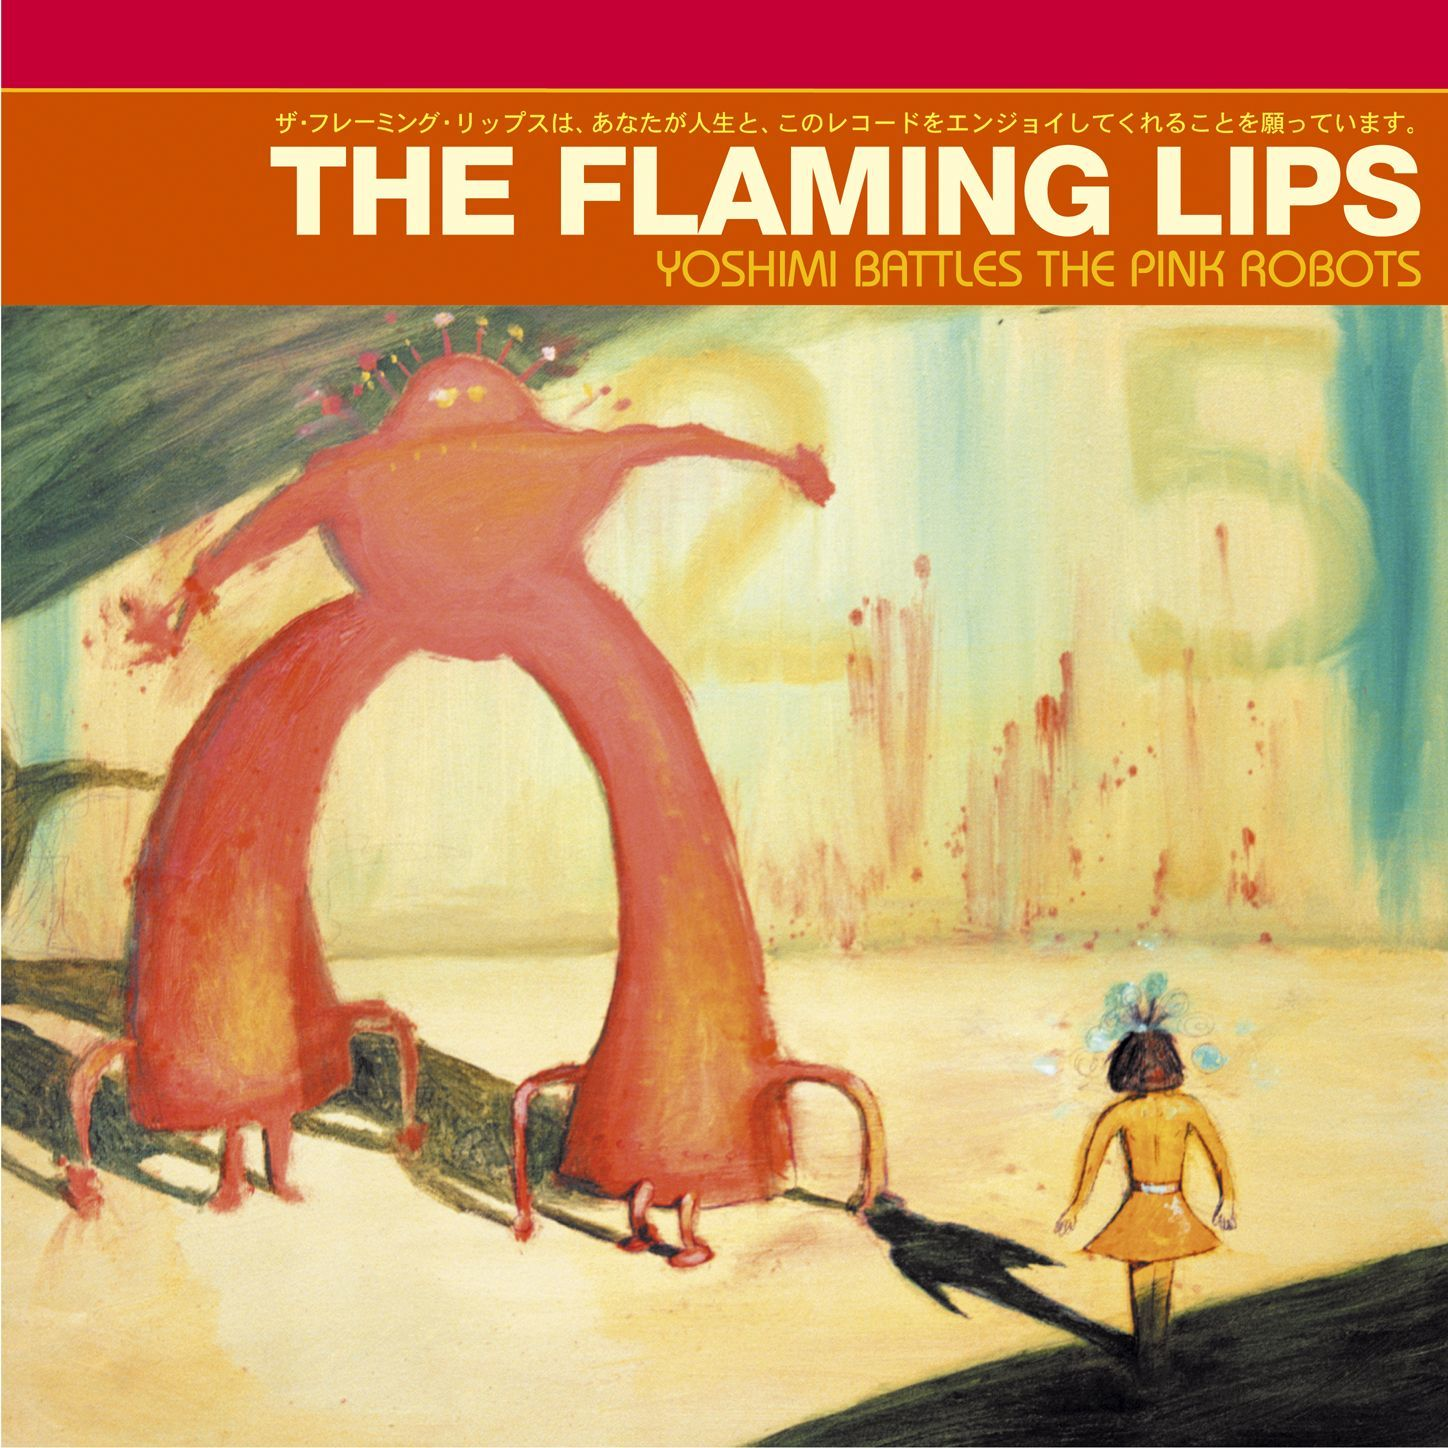 The flaming lips HD Wallpaper